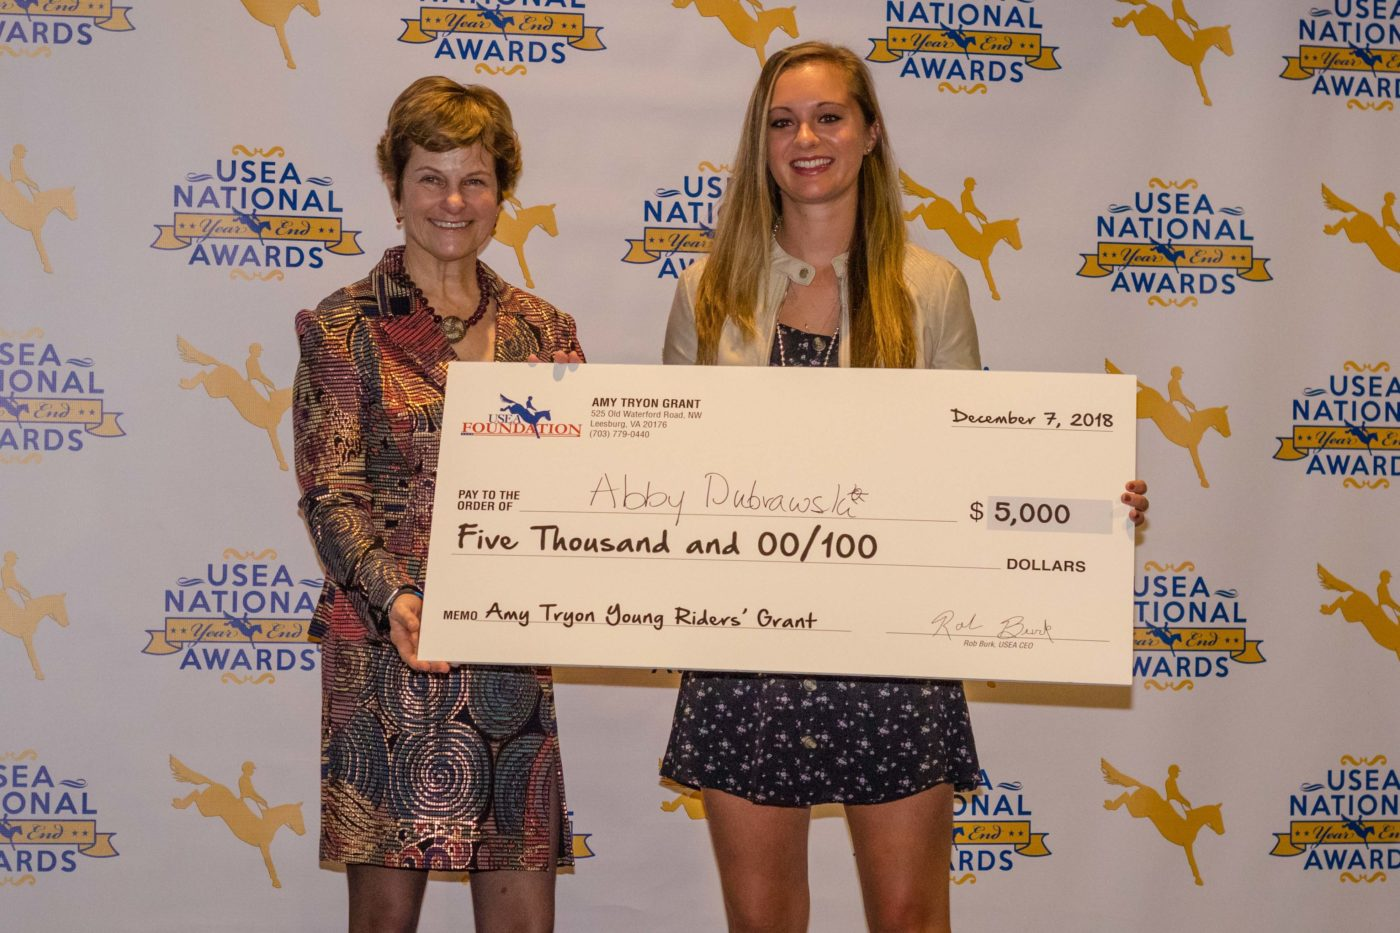 The $5,000 Amy Tryon Grant went to Abby Dubrawski.